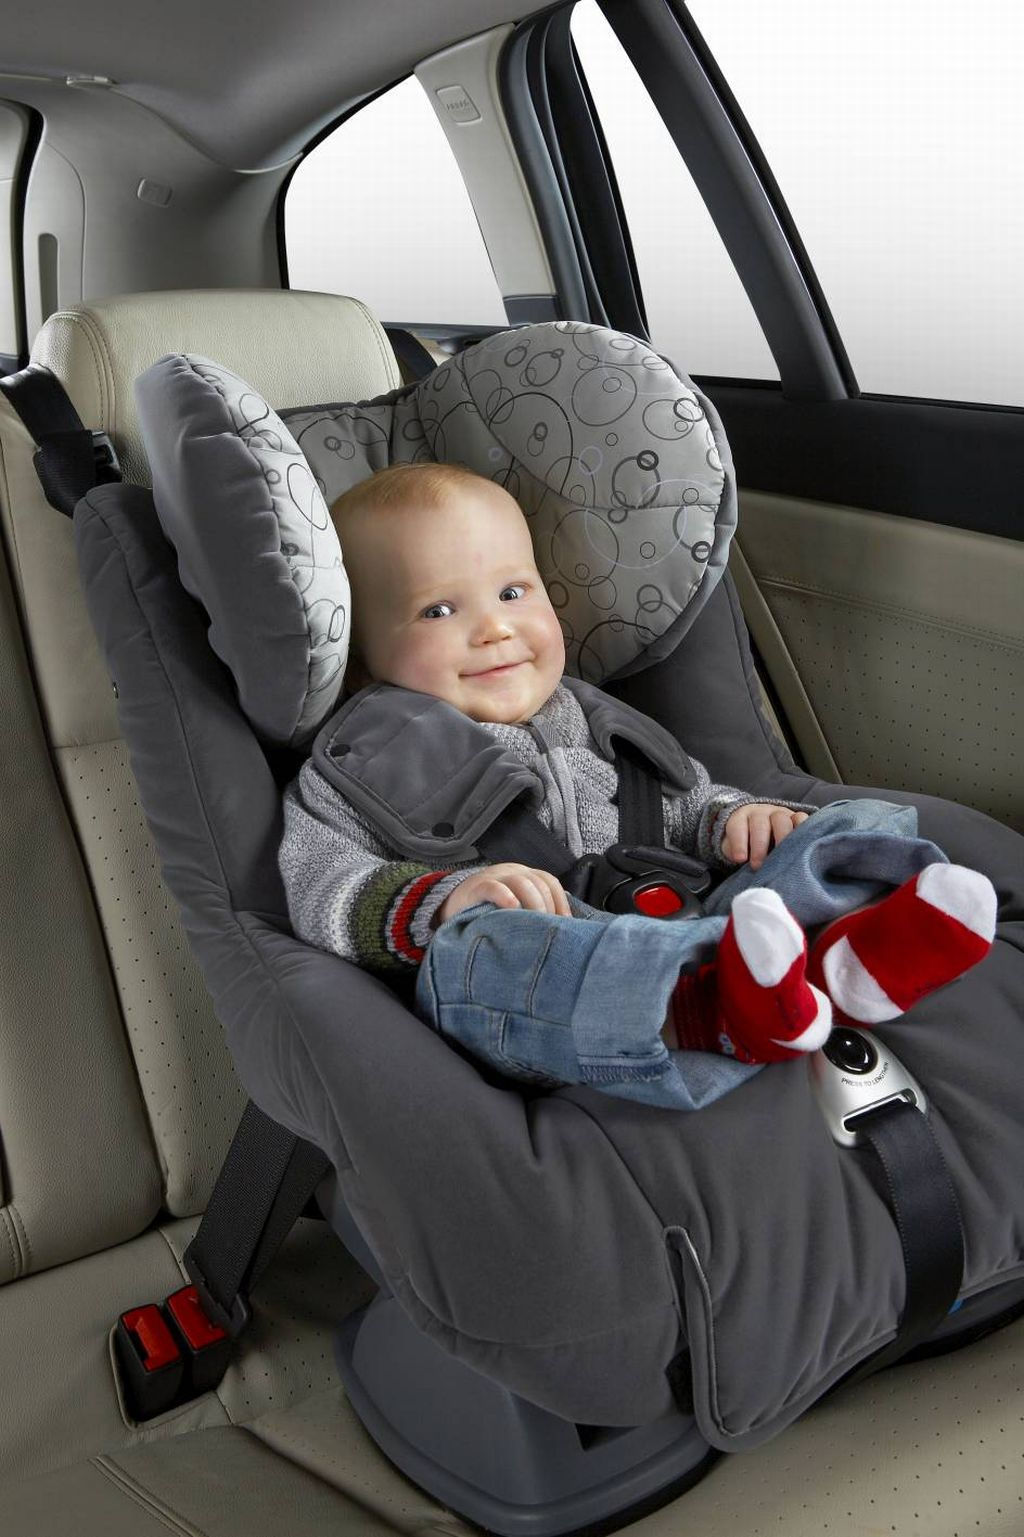 Buckle Up Kids A Free Child Restraint Checking Program